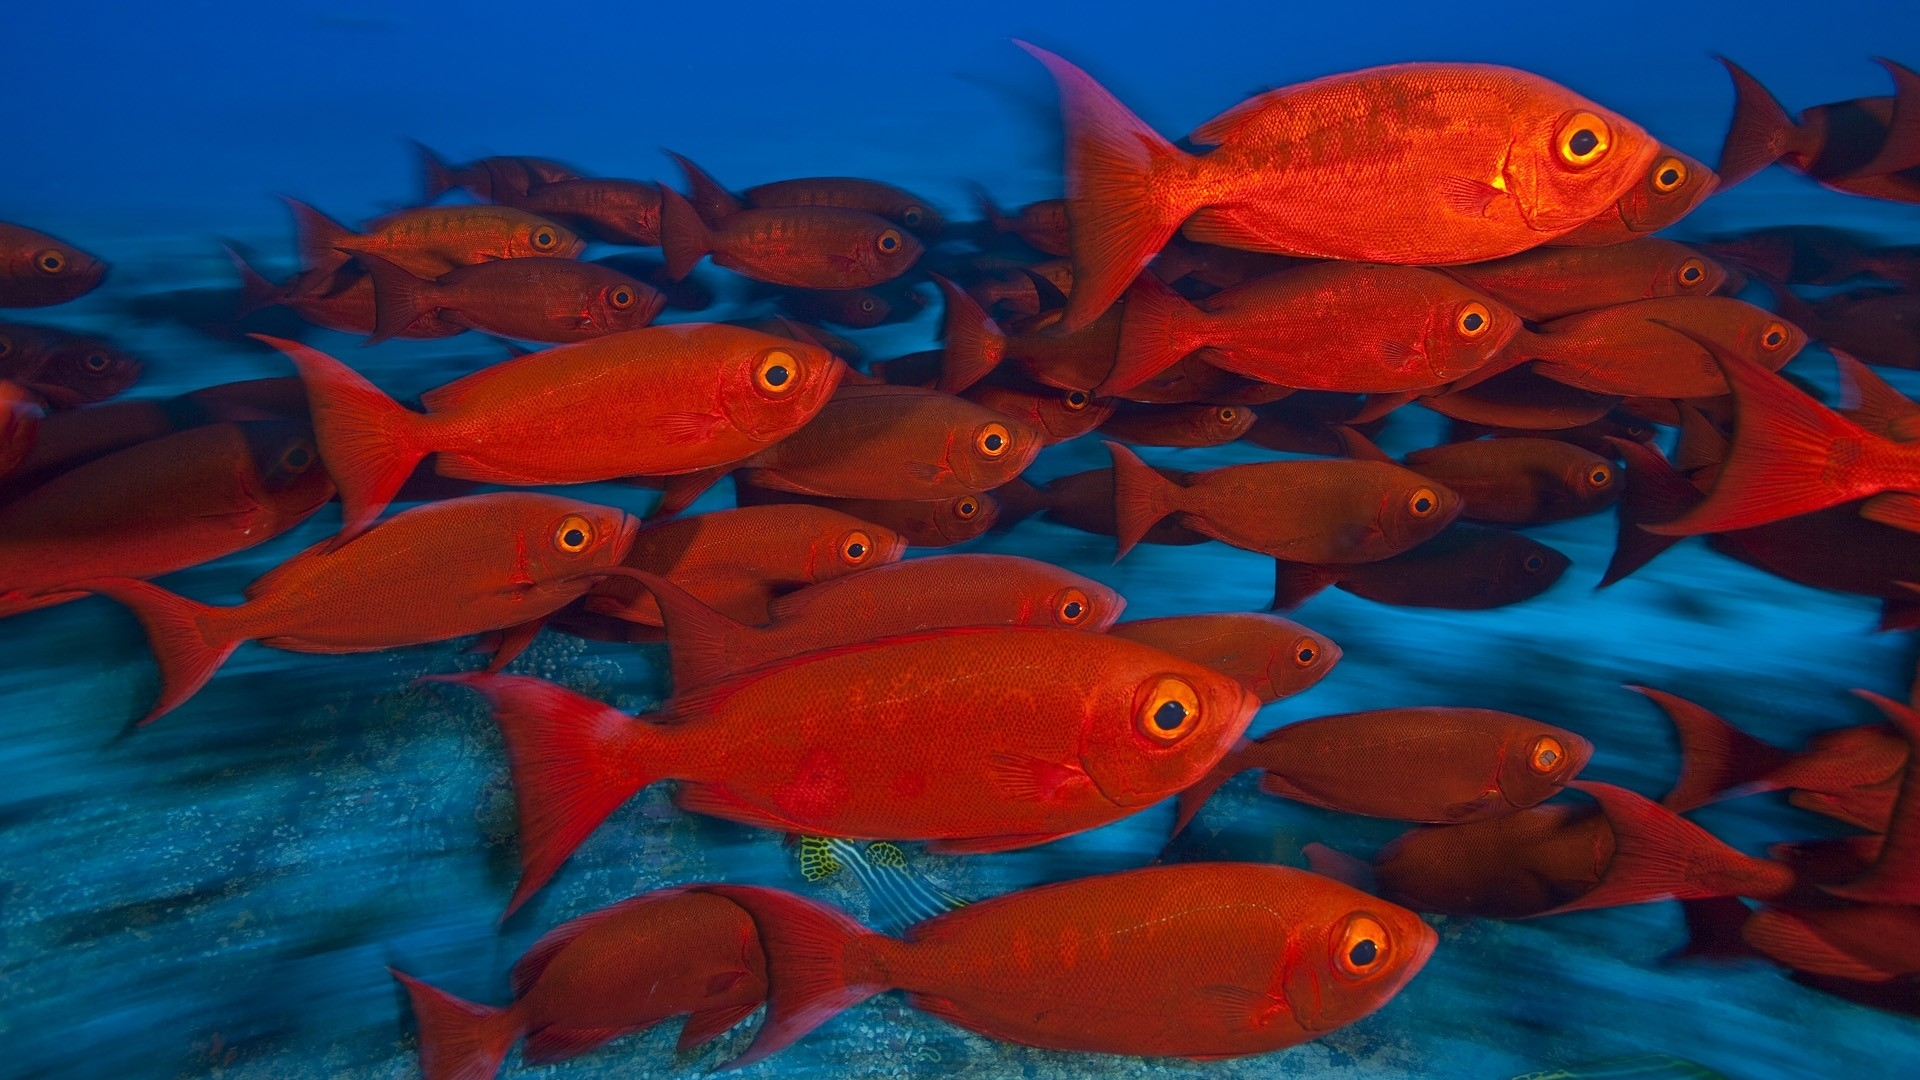 Animals fishes tropical red color eyes underwater sea for Wallpaper fish in water